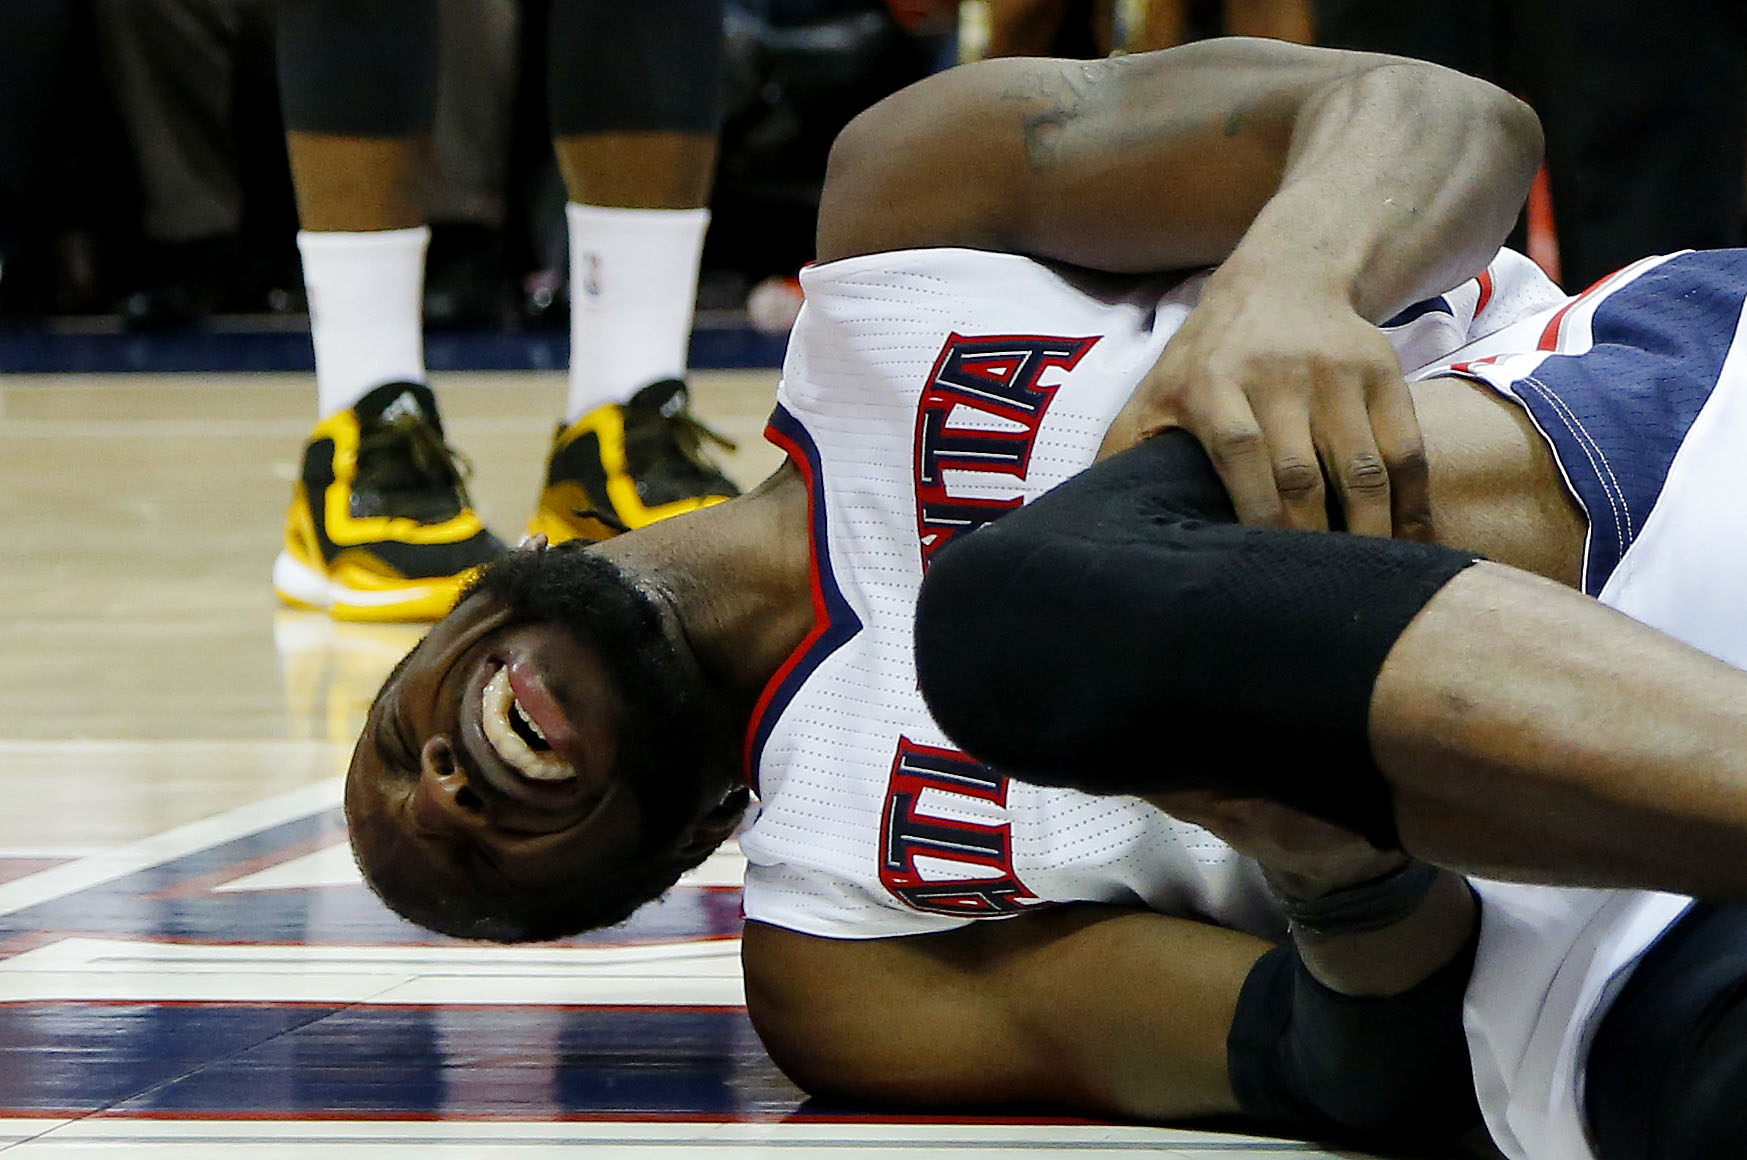 ATLANTA, GA - MAY 20:  DeMarre Carroll #5 of the Atlanta Hawks reacts after injuring his left leg in the fourth quarter against the Cleveland Cavaliers during Game One of the Eastern Conference Finals of the 2015 NBA Playoffs at Philips Arena on May 20, 2